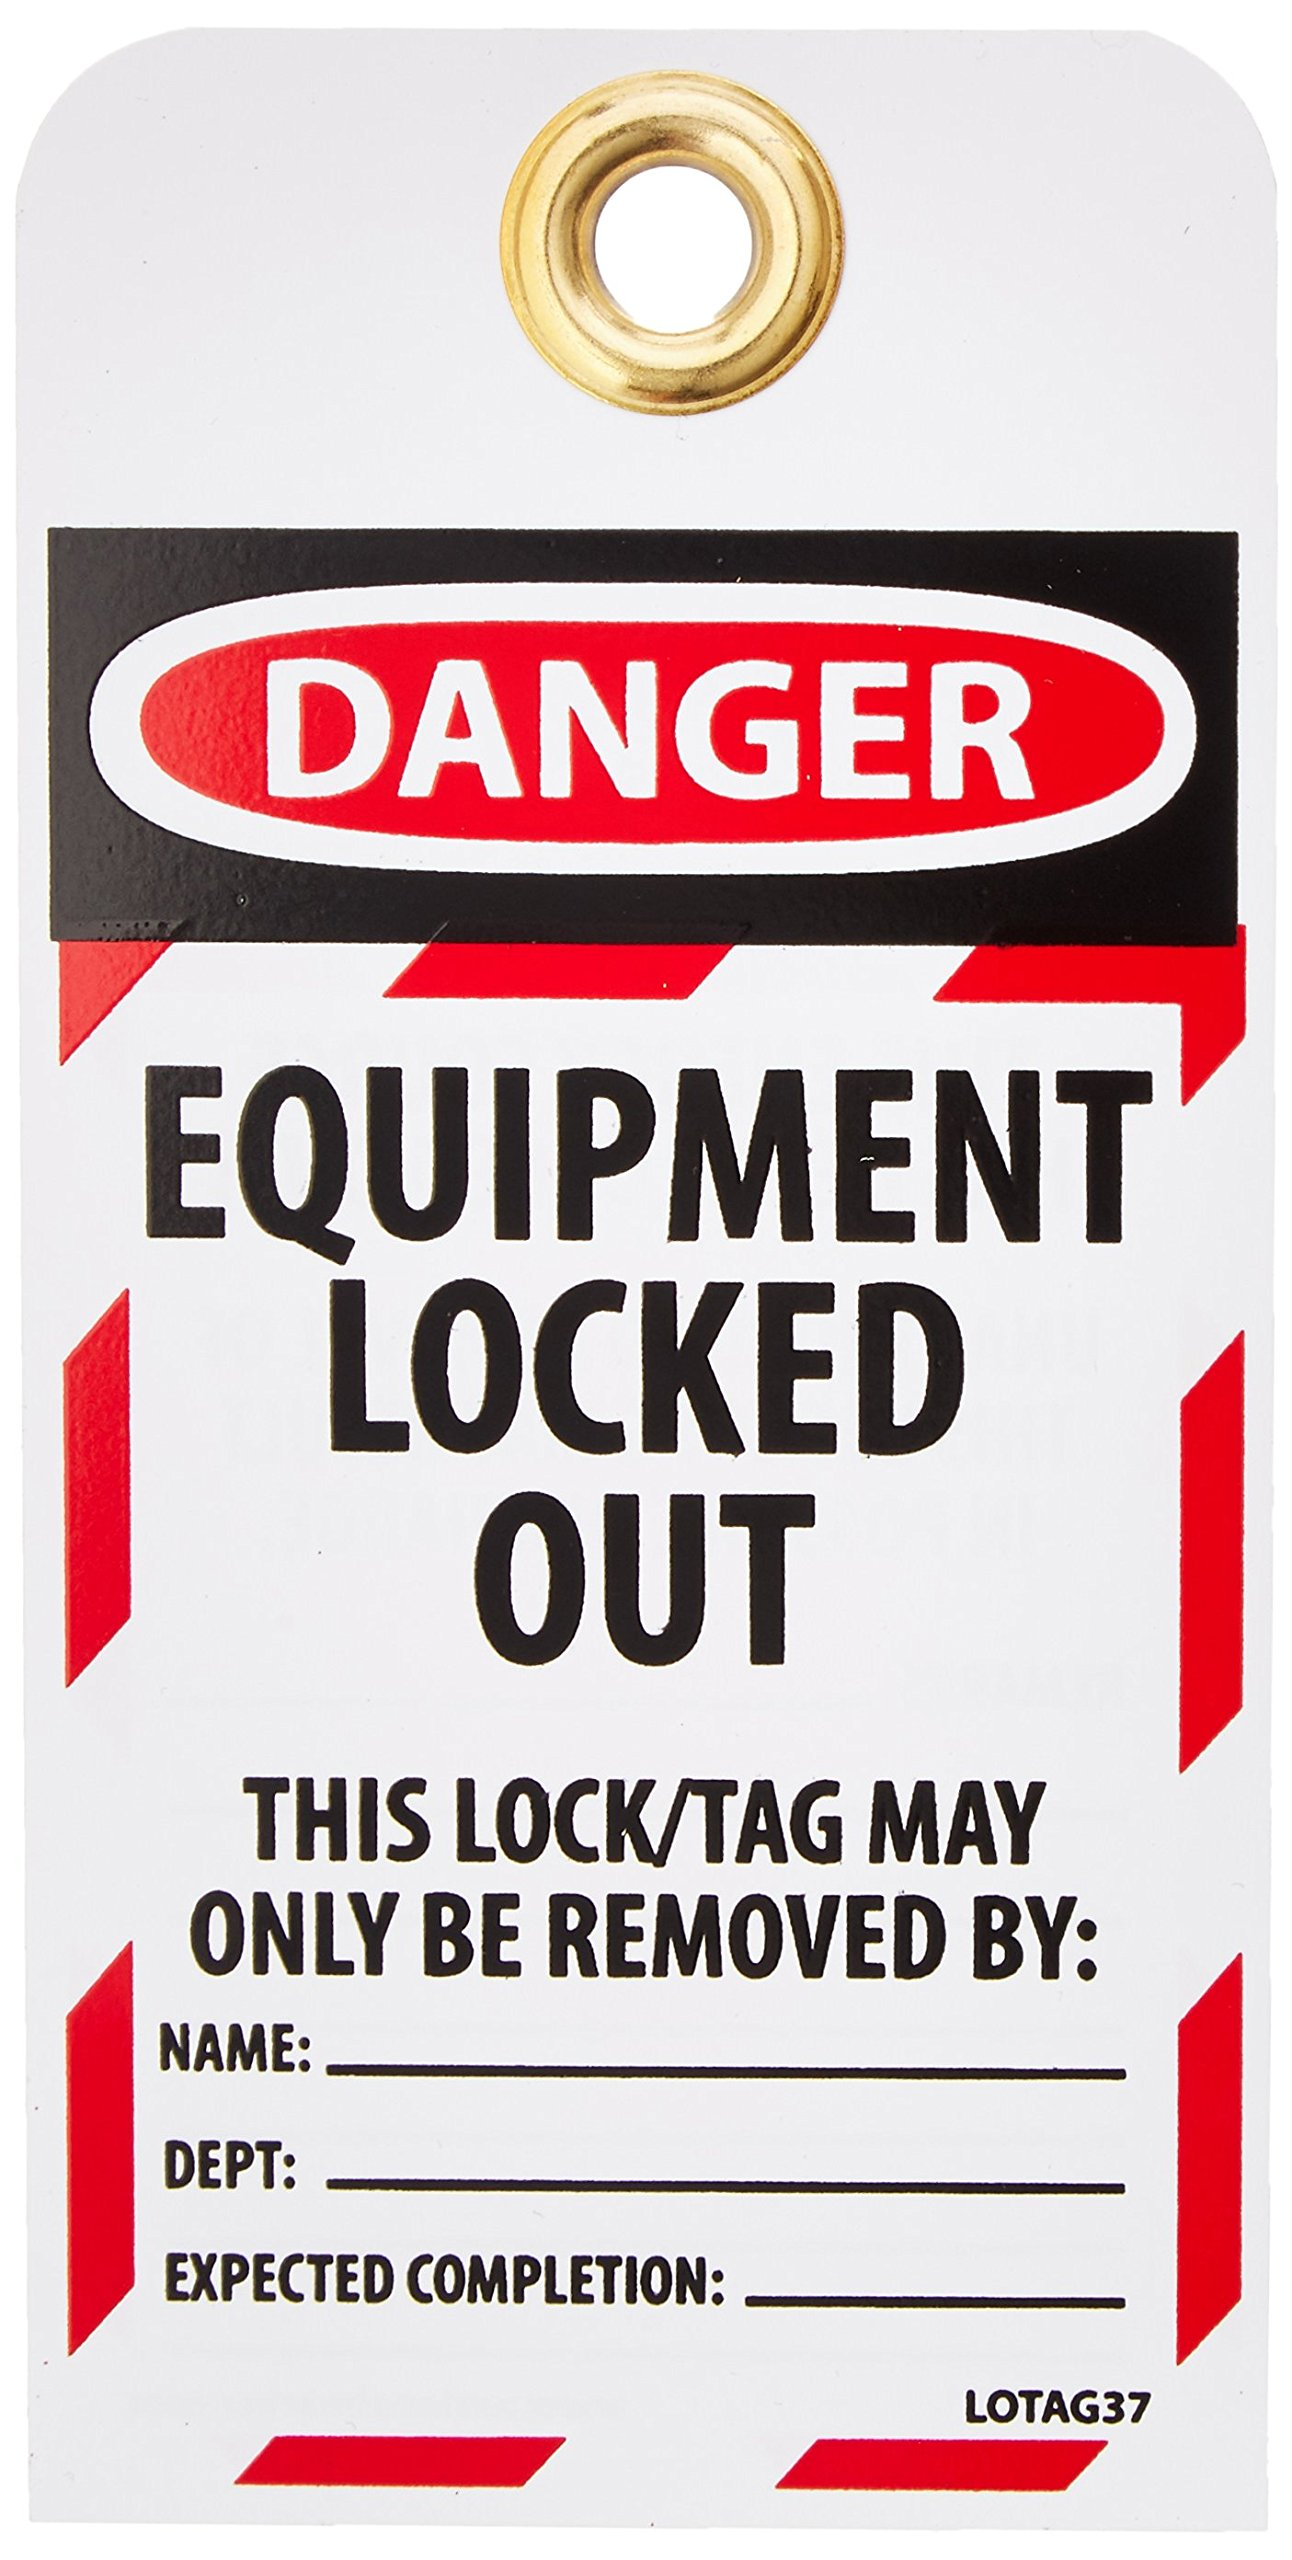 NMC LOTAG37-25 ''DANGER - EQUIPMENT LOCKED OUT'' Lockout Tag, Unrippable Vinyl, 3'' Length, 6'' Height, Black/Red on White (Pack of 25)